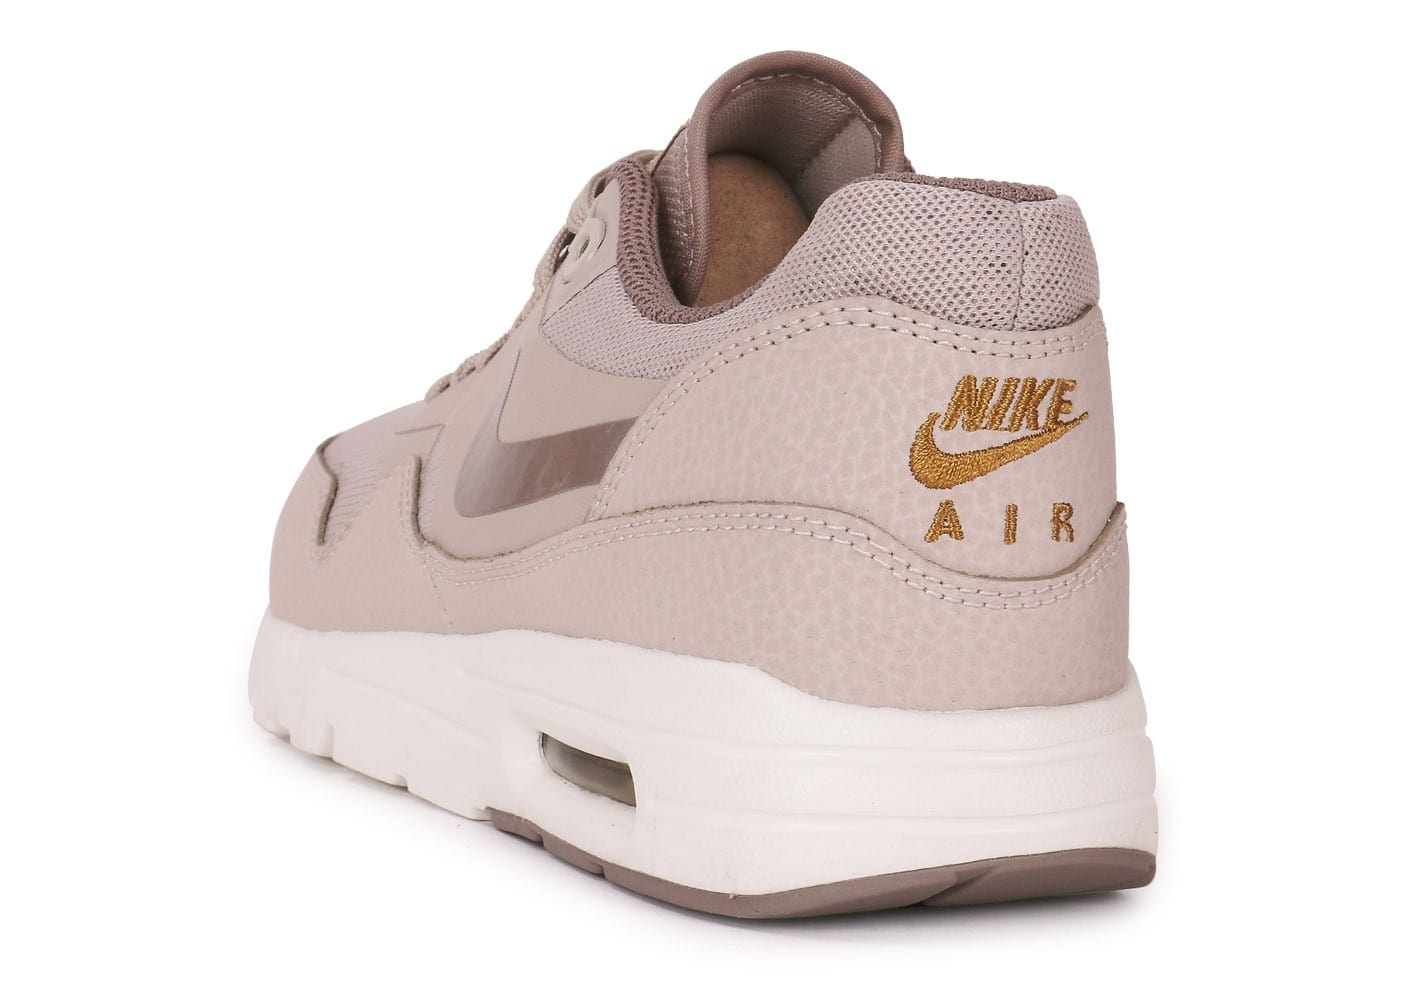 nike air max 1 ultra essentials beige chaussures chaussures chausport. Black Bedroom Furniture Sets. Home Design Ideas